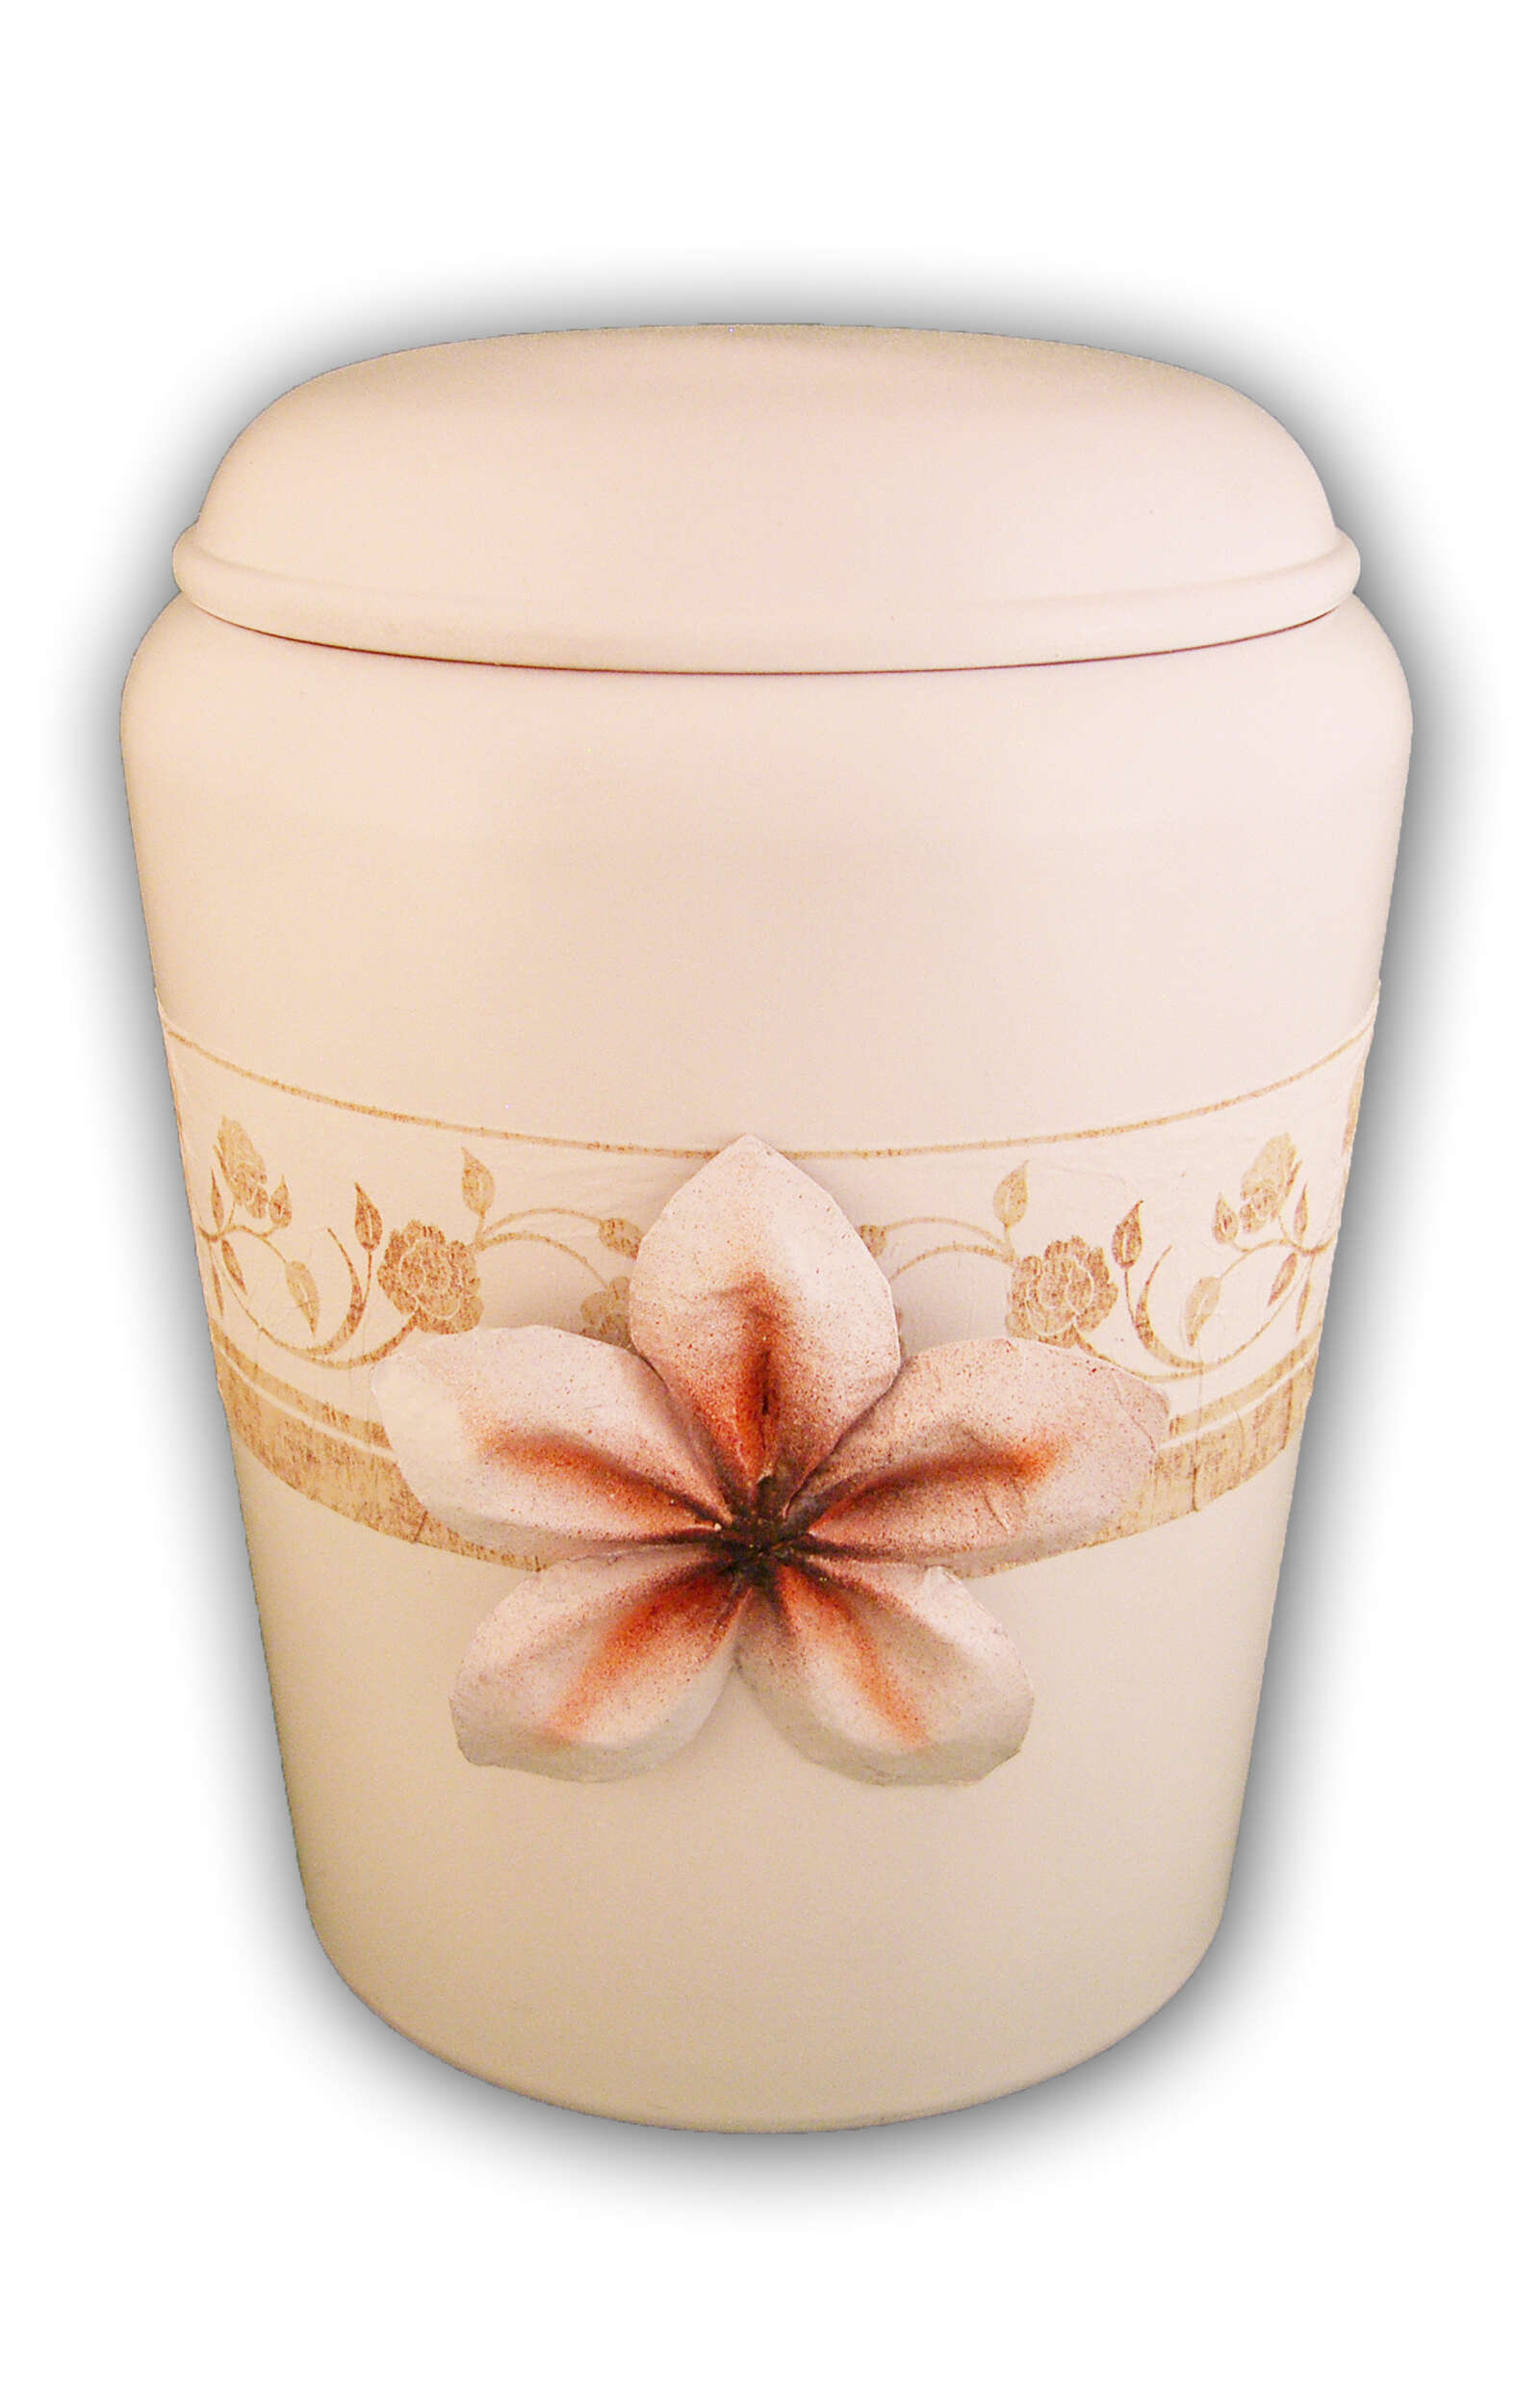 en BWB1726 Nona Mela biodigradable urn flower of life cream white funeral urn for human ashes